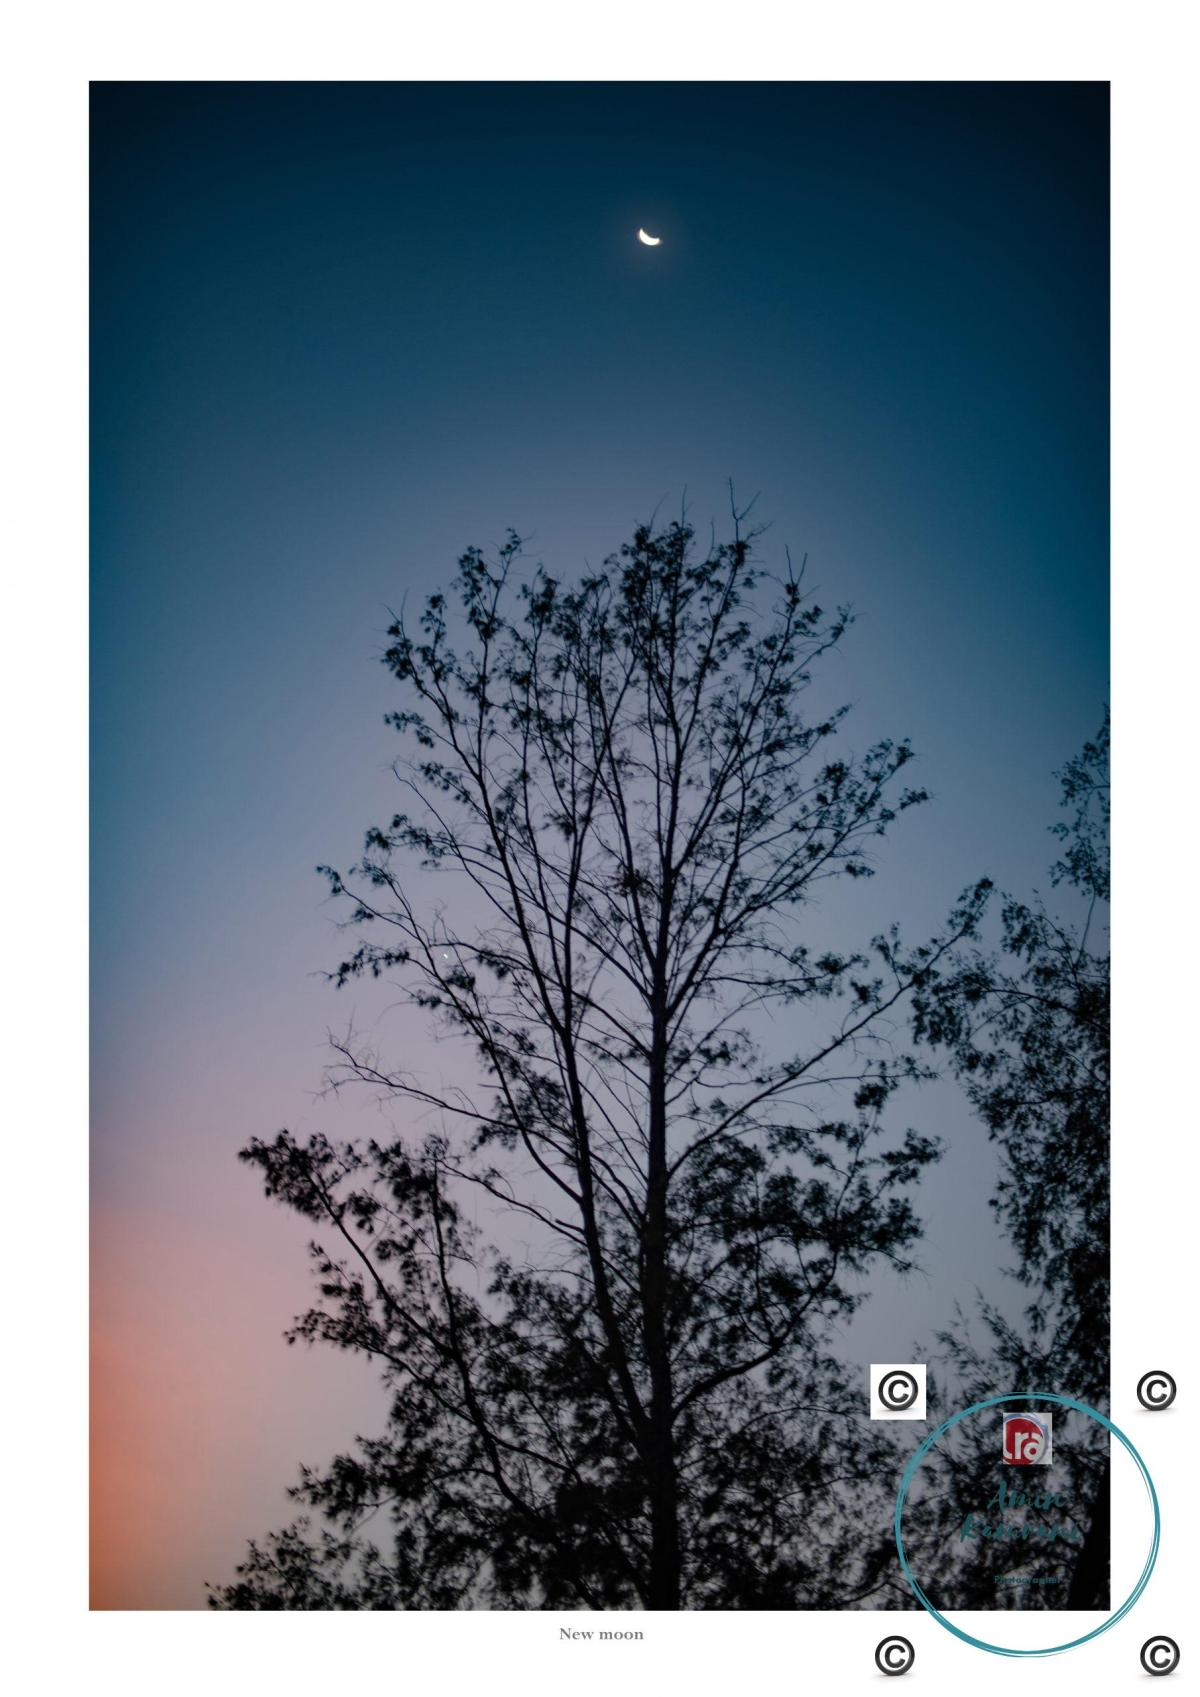 landscape, moon, dusk, tree